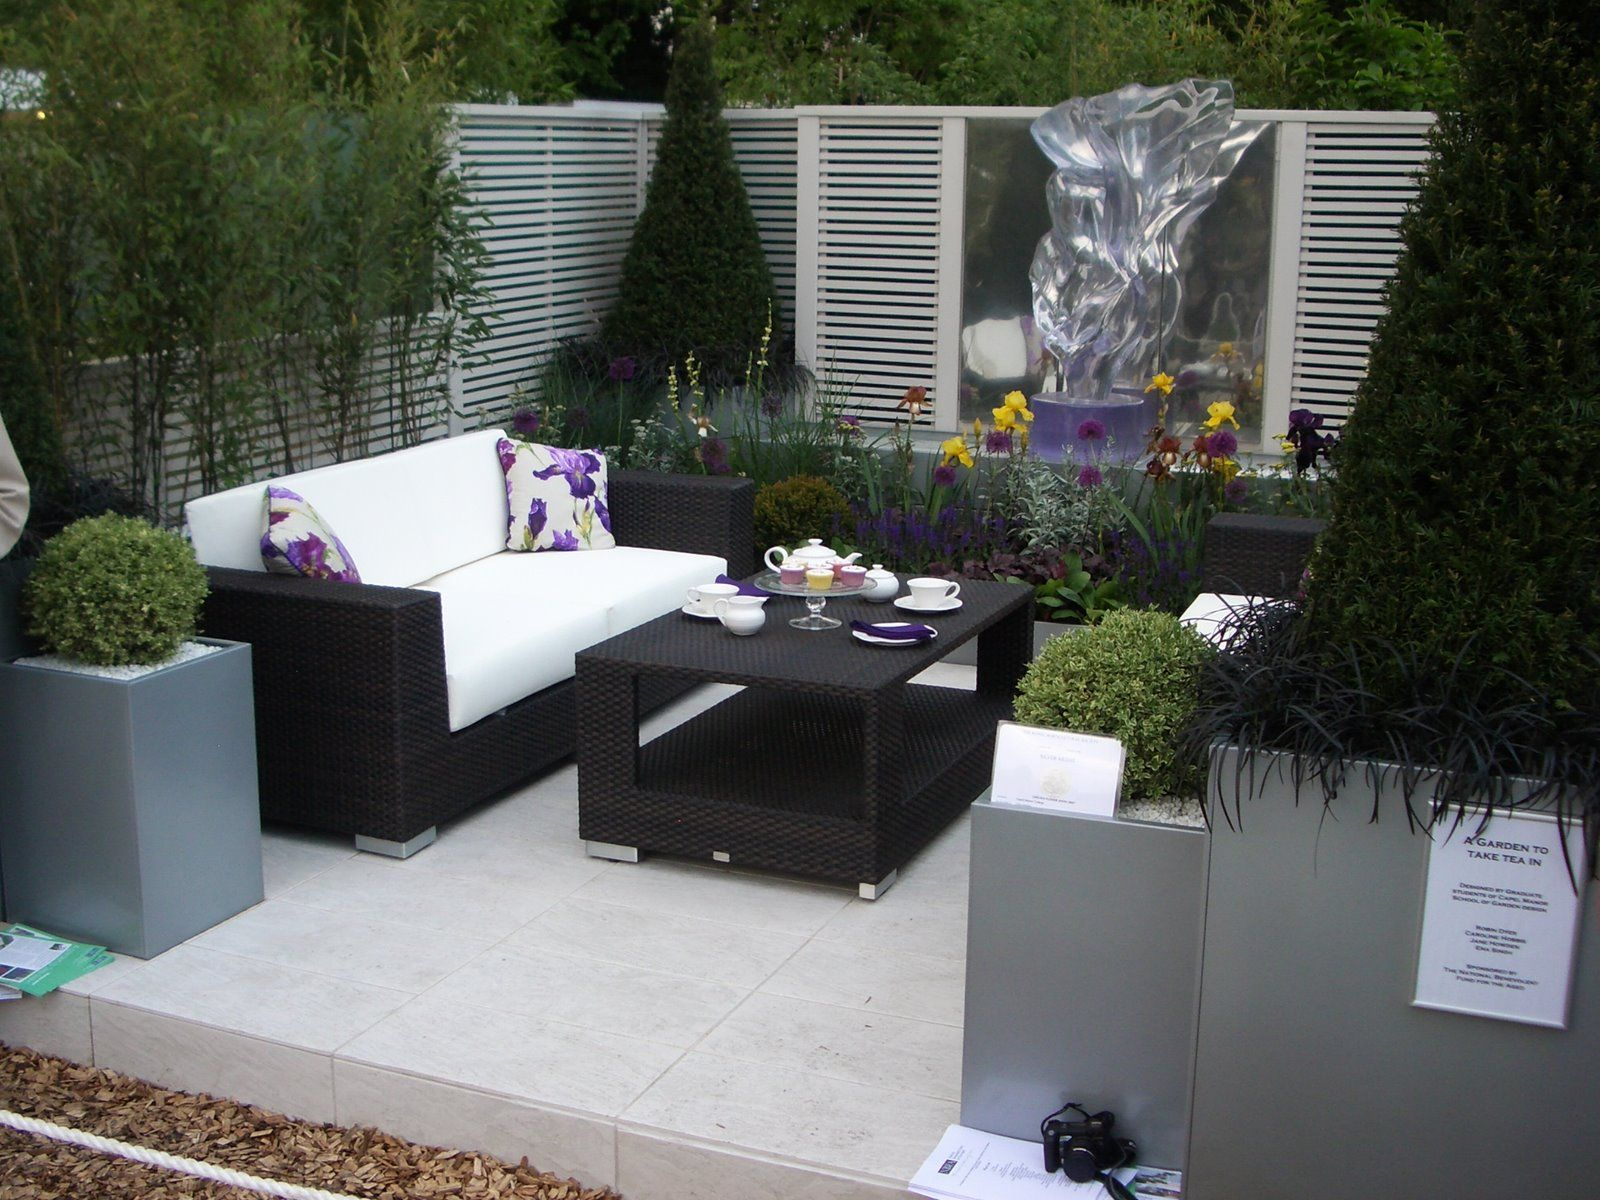 Small Outdoor Balcony Design with Modern Sofa and Square Table